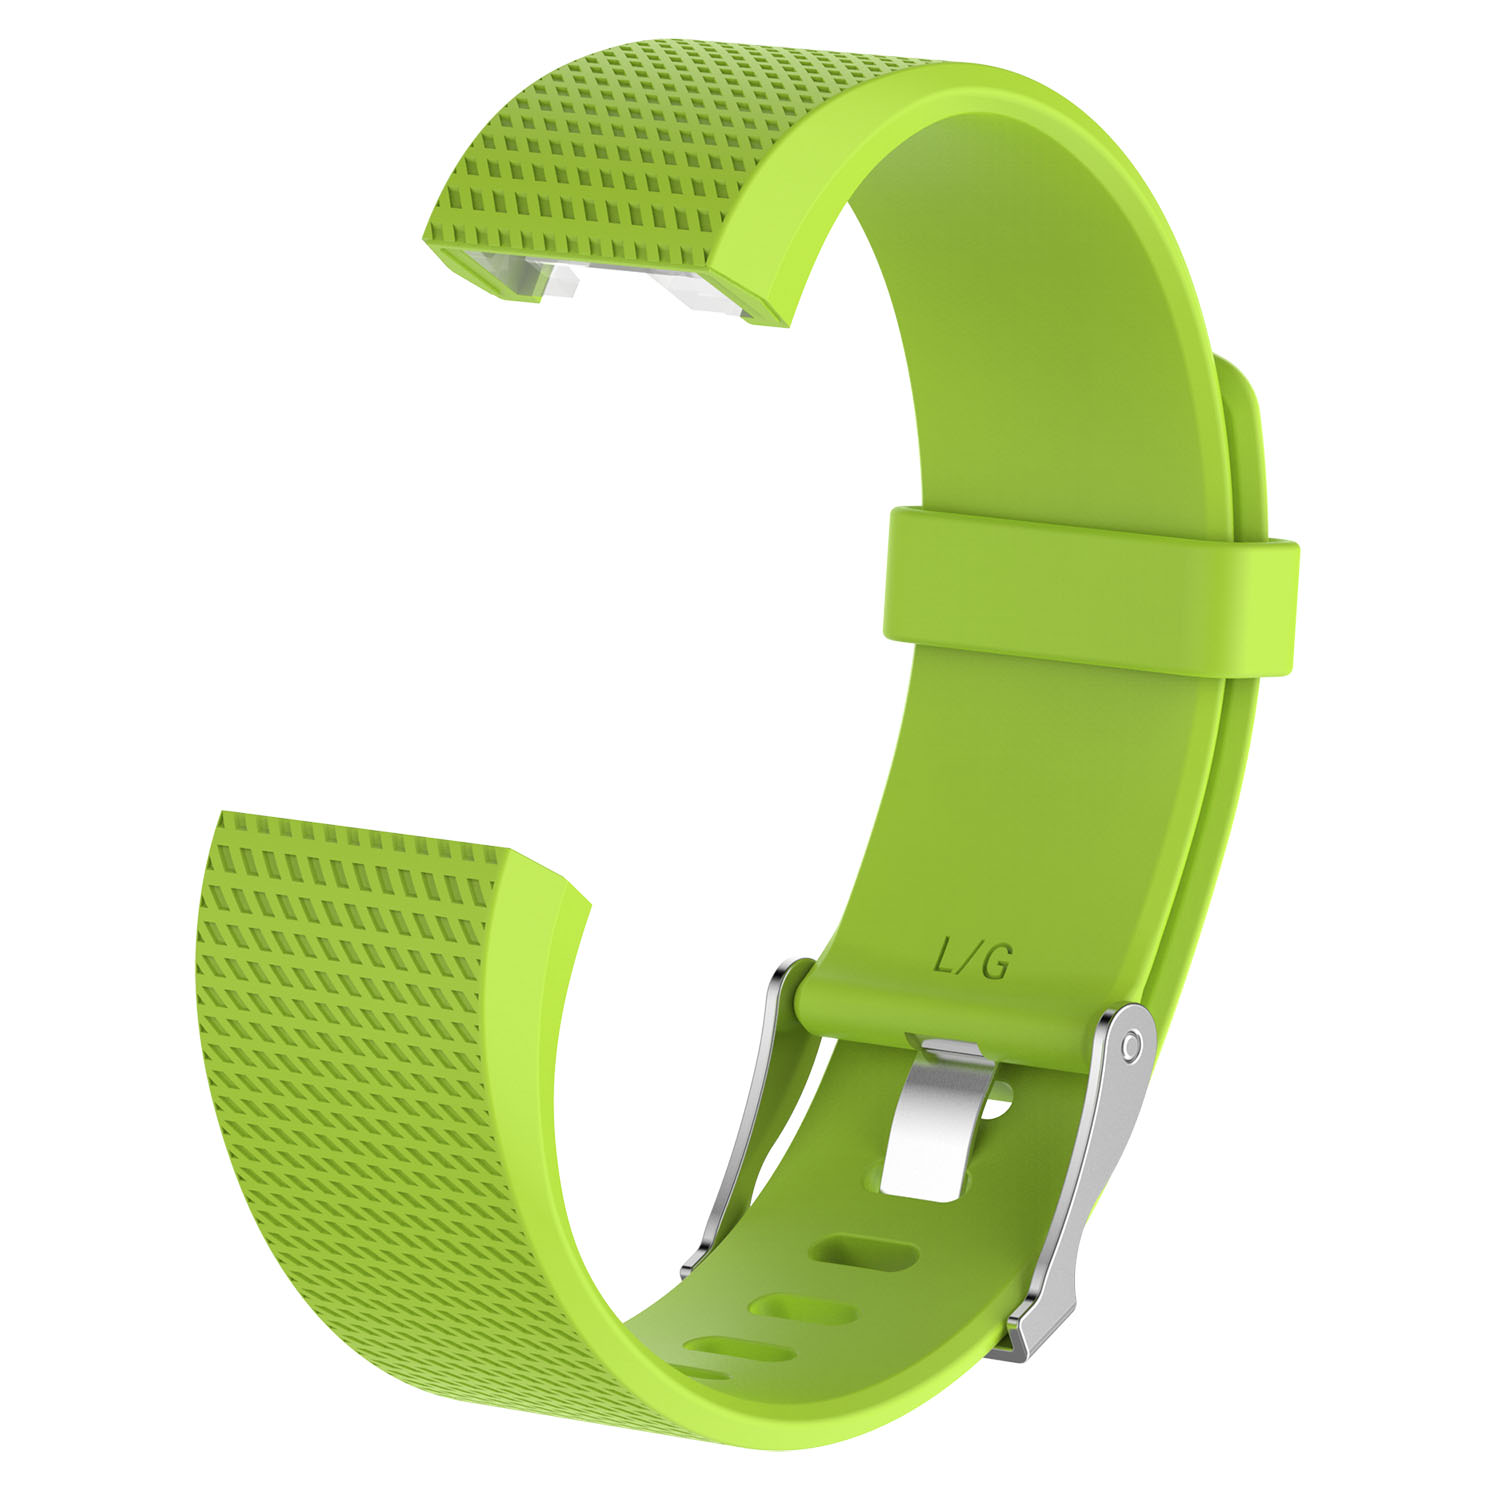 Replacement-Silicone-Wristband-Watch-Strap-Bands-Bracelet-For-Fitbit-Charge-2 thumbnail 63